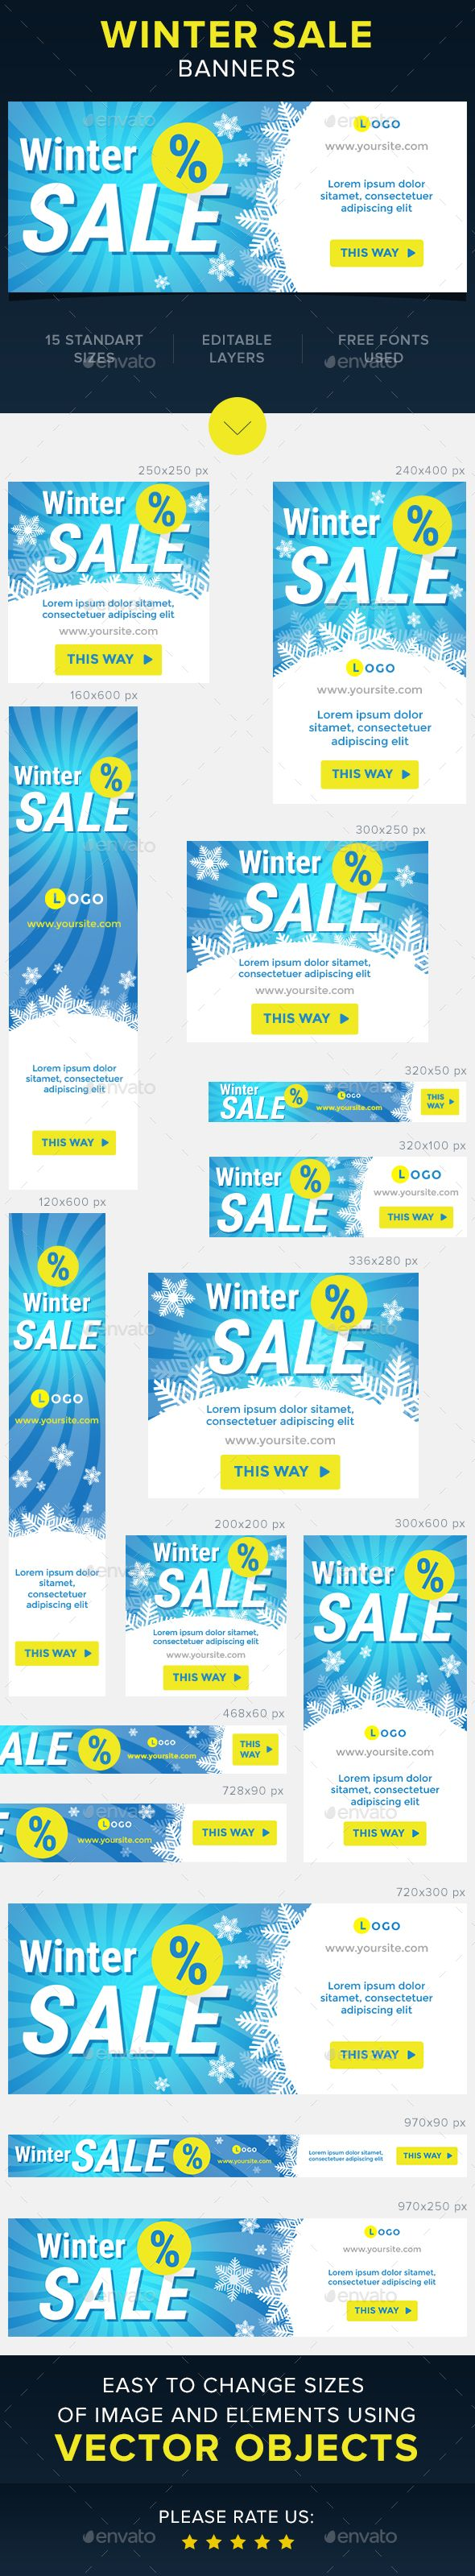 Winter Sale Web Banners Template PSD #design #ads Download: http://graphicriver.net/item/winter-sale-banners/13899609?ref=ksioks